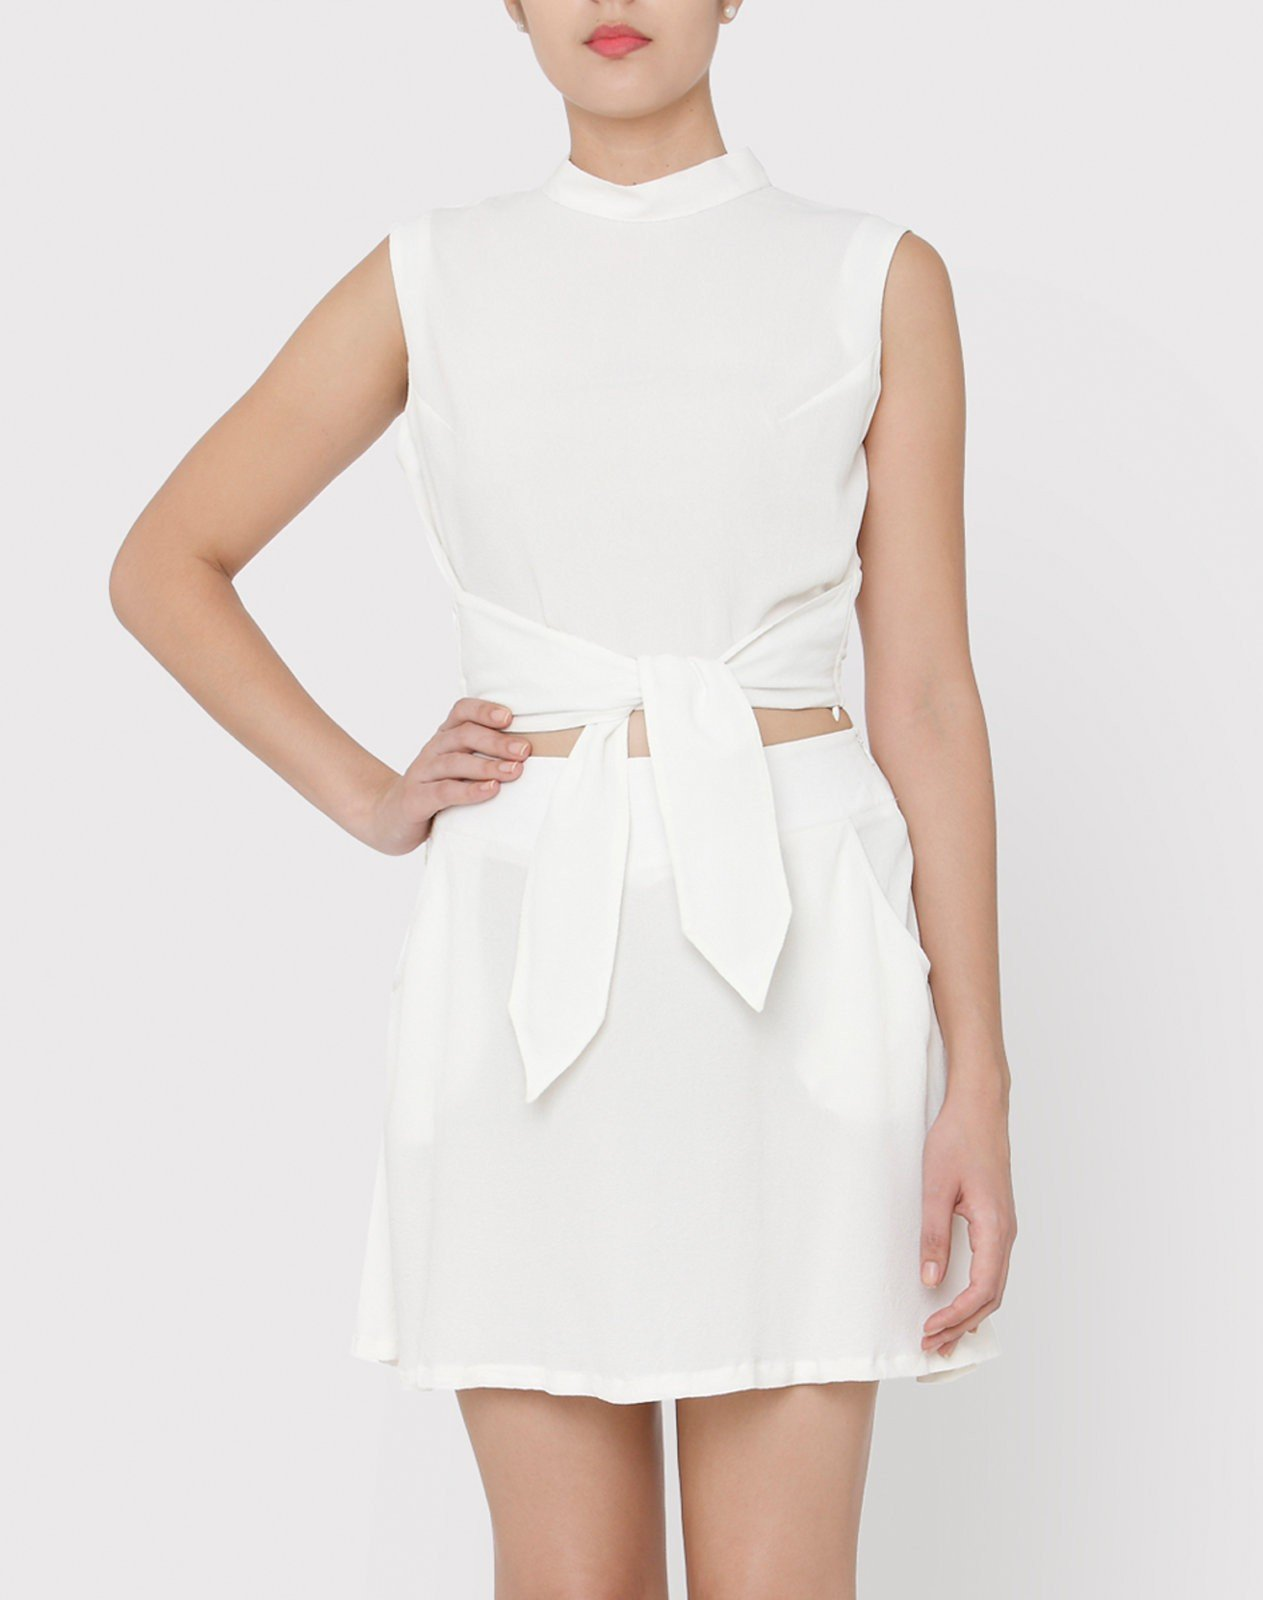 White Tie-up Crop Top styled with Skater Skirt in White